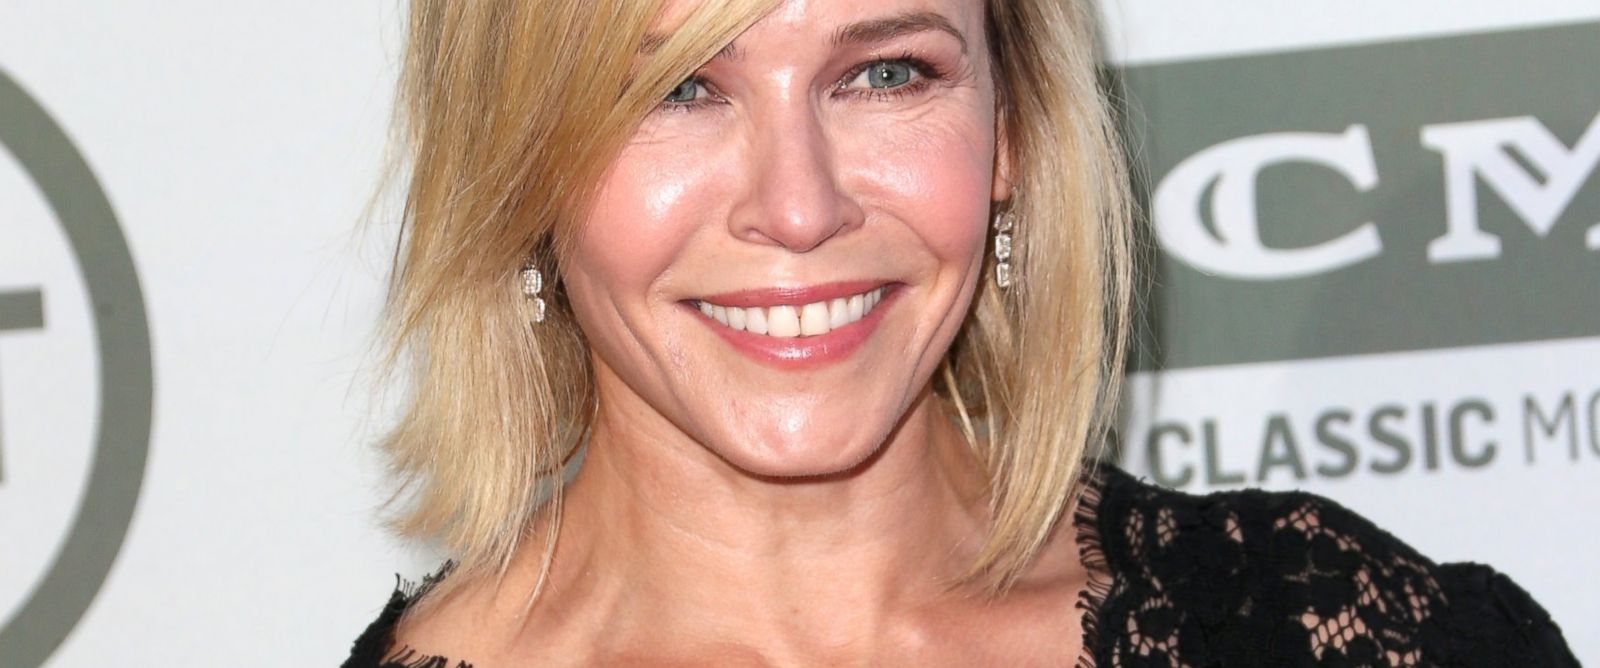 PHOTO: Chelsea Handler attends the 2014 AFI Life Achievement Award: A Tribute to Jane Fonda at the Dolby Theatre, June 5, 2014, in Hollywood, Calif.